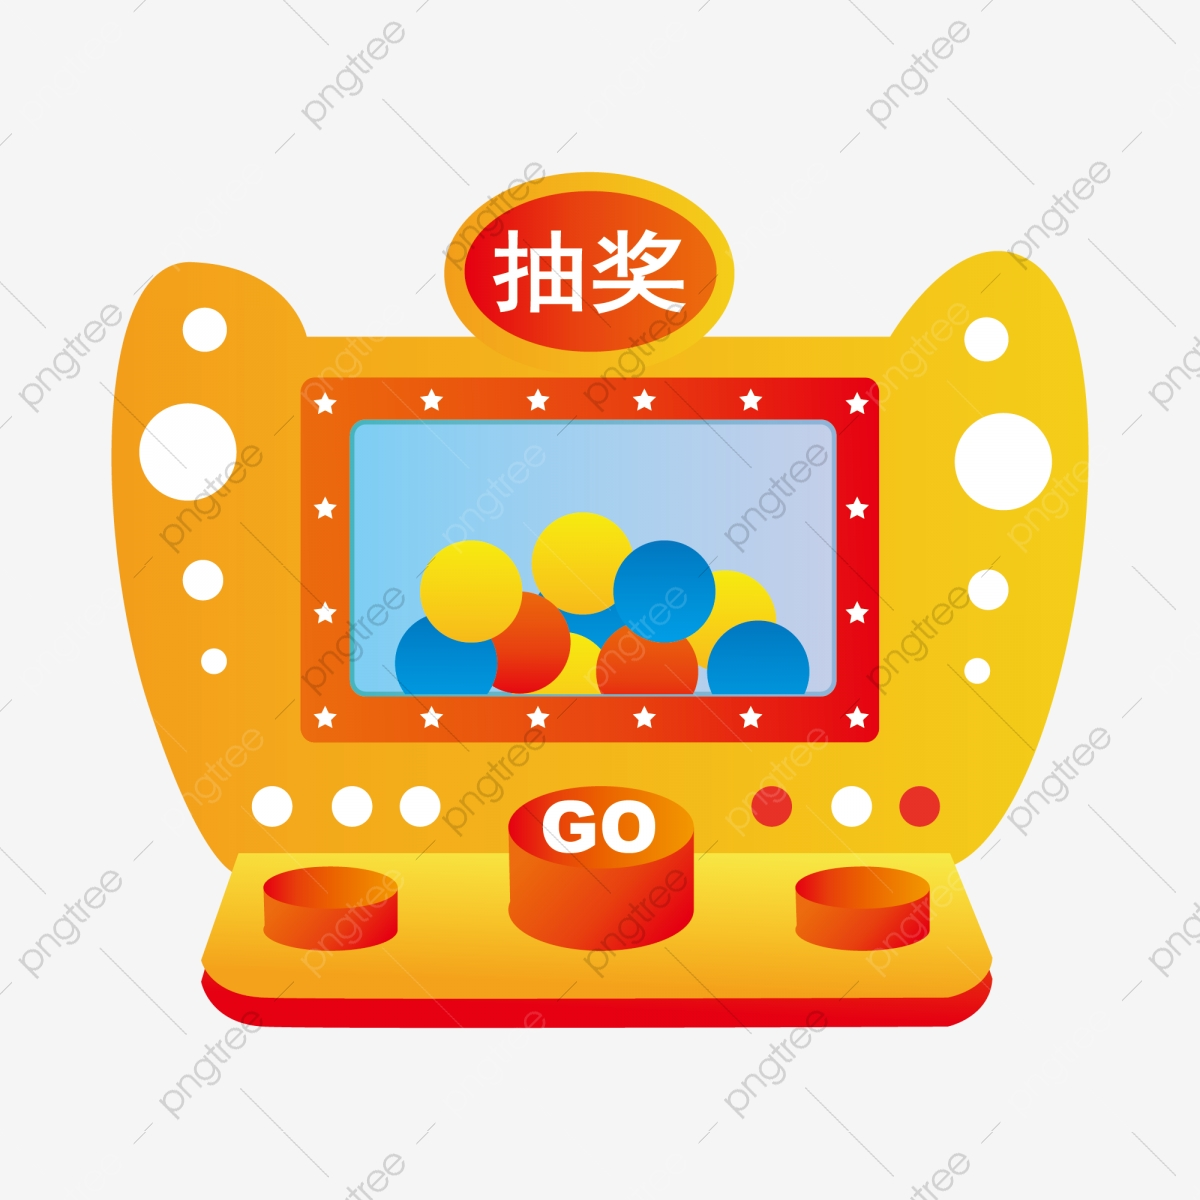 Download for free png. Casino clipart slot machine